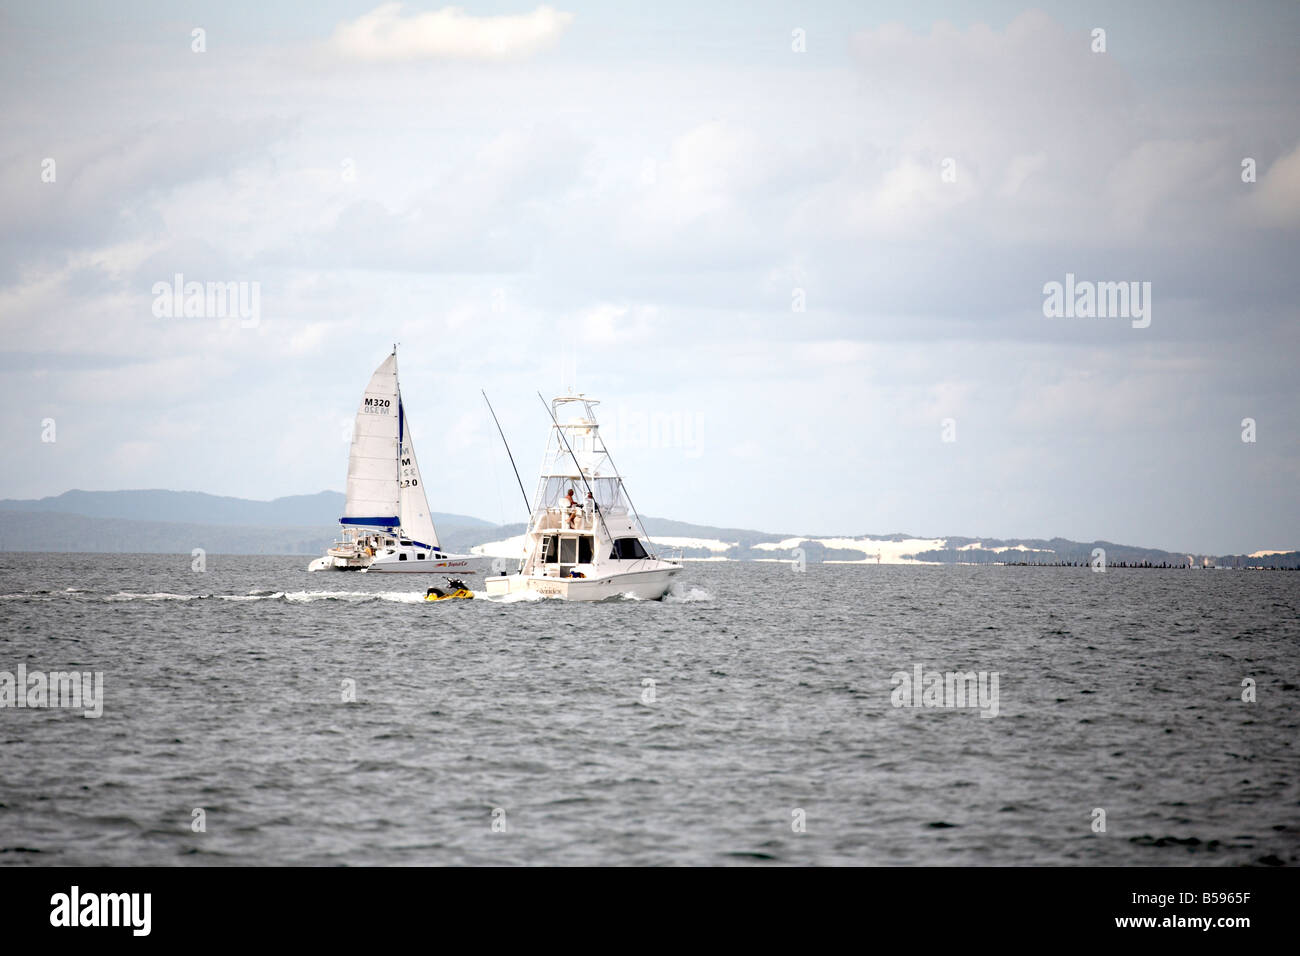 Sailing boat and fishing cruiser on sea with Moreton Island